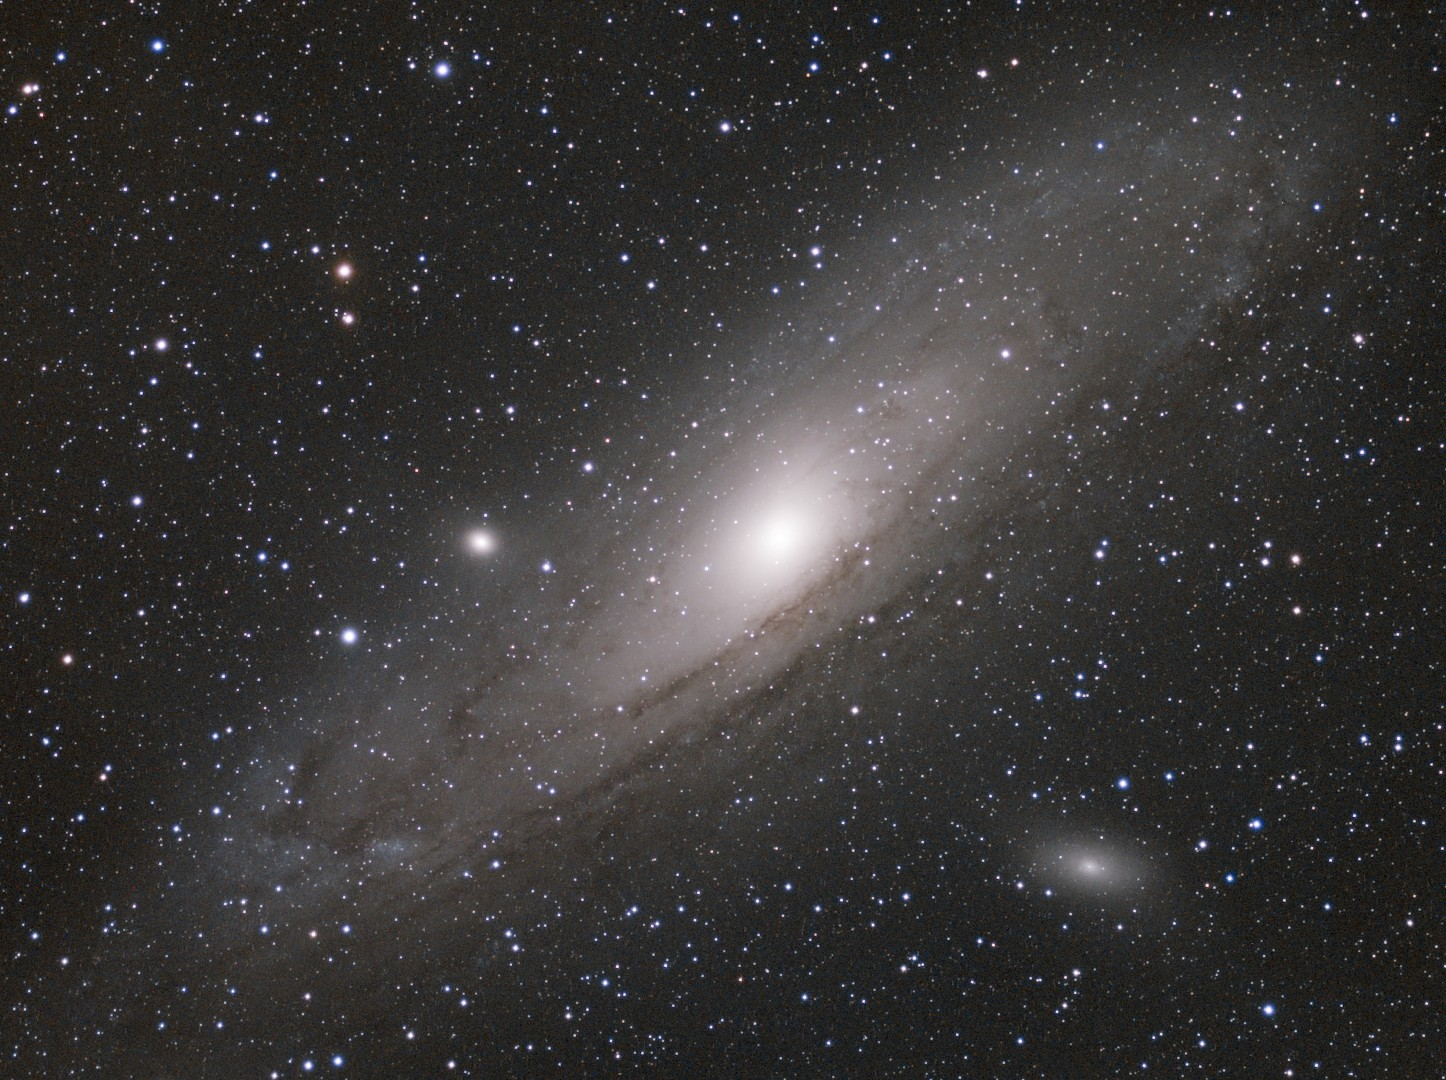 M31 90min LRGB test image with ASI1600mm-cooled